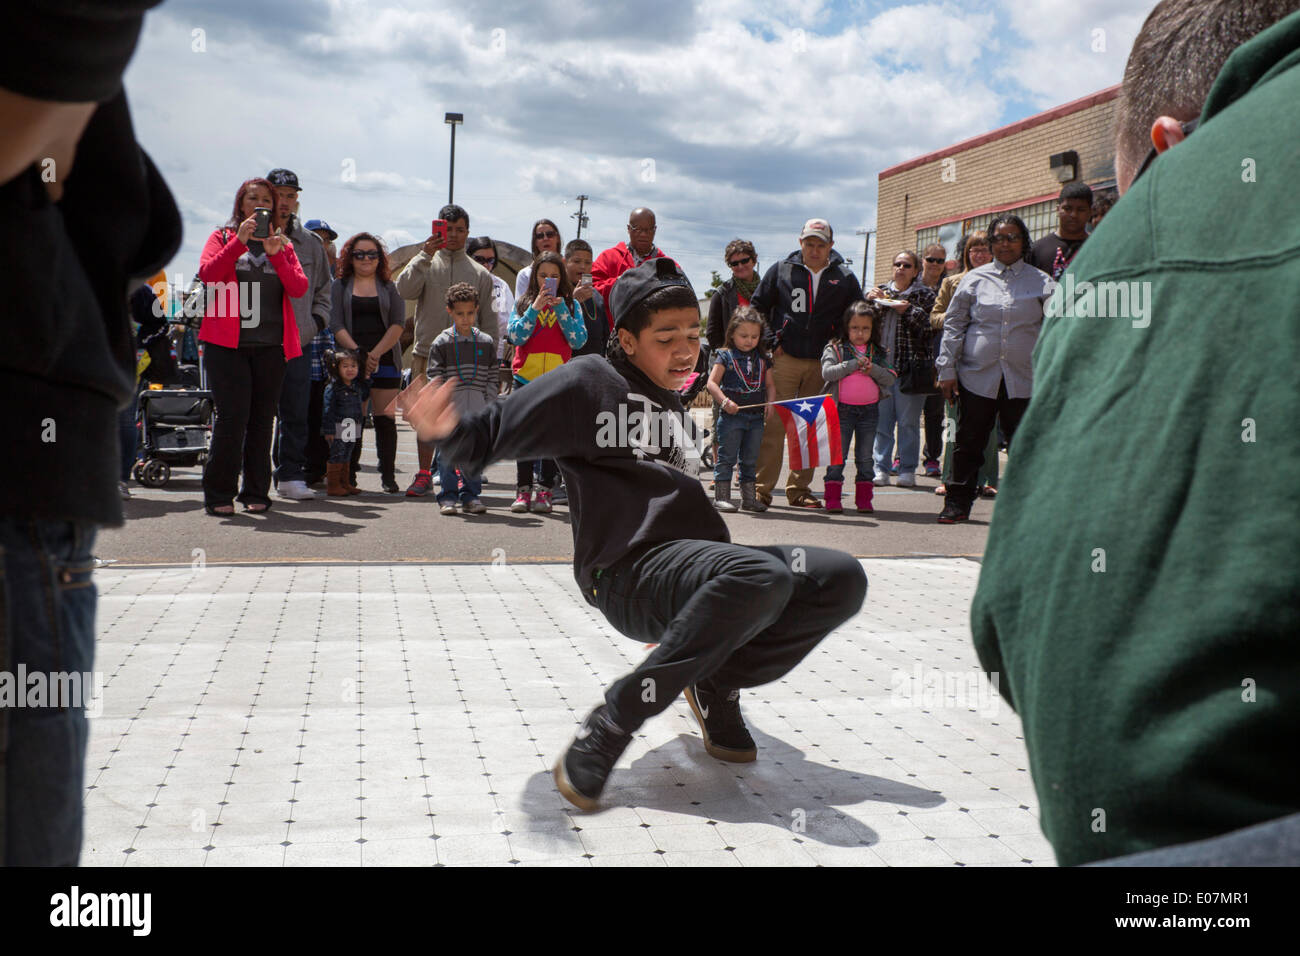 Detroit, Michigan - A breakdance demonstration at the Blessing of the Lowriders. Stock Photo